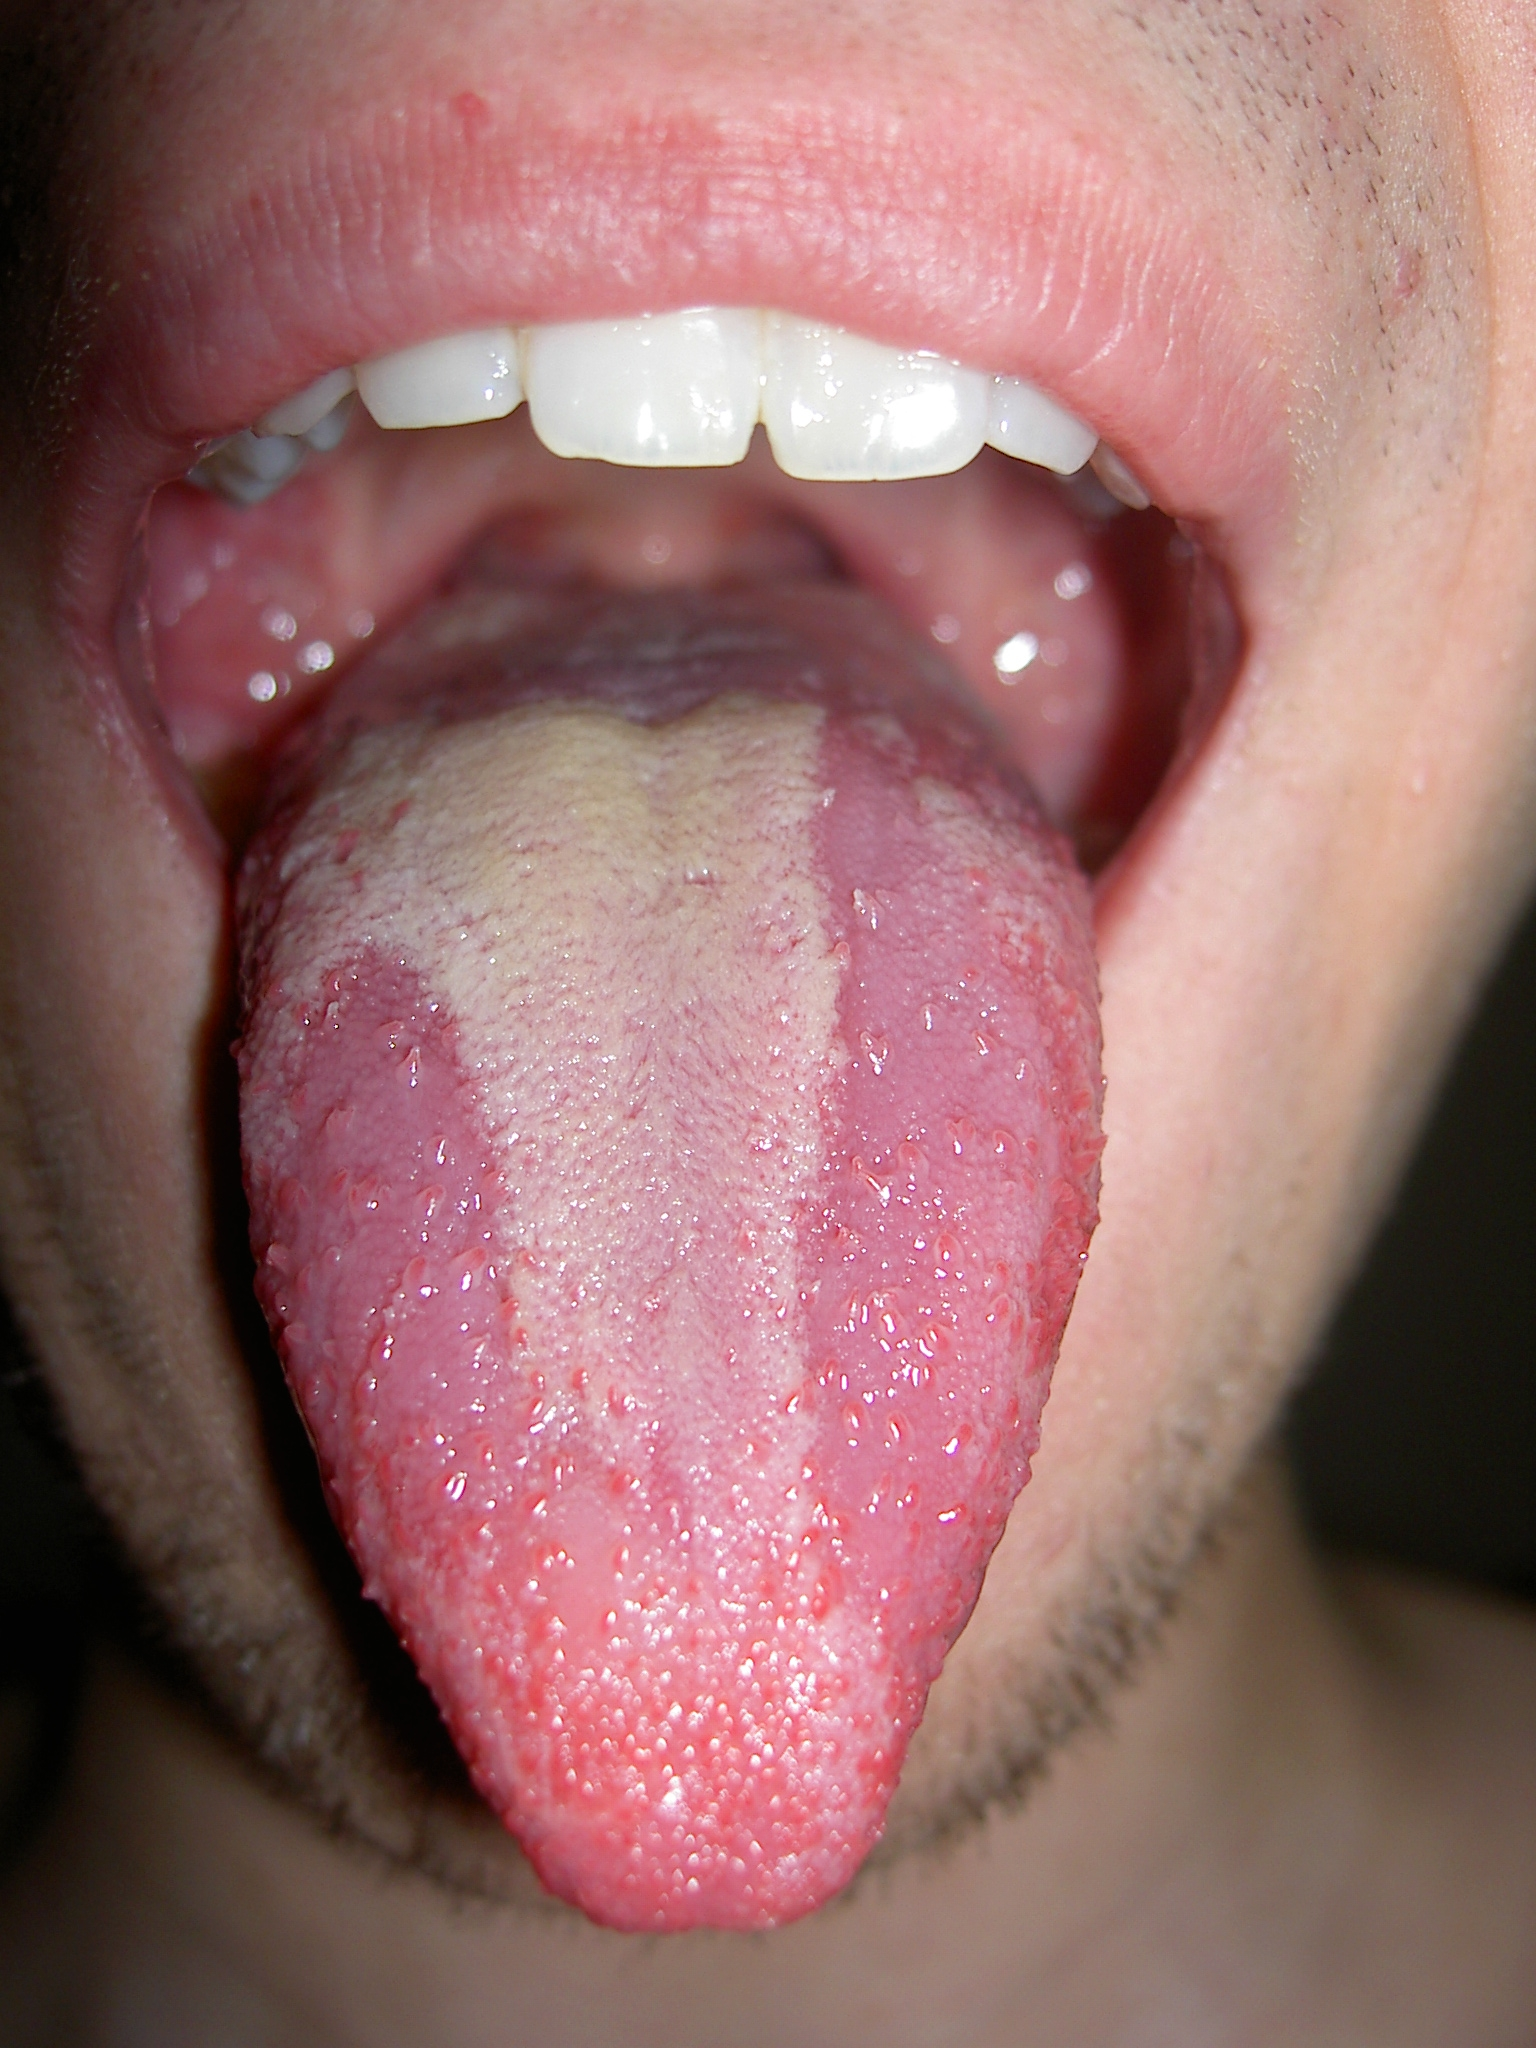 Sexual causes of throat ulcers